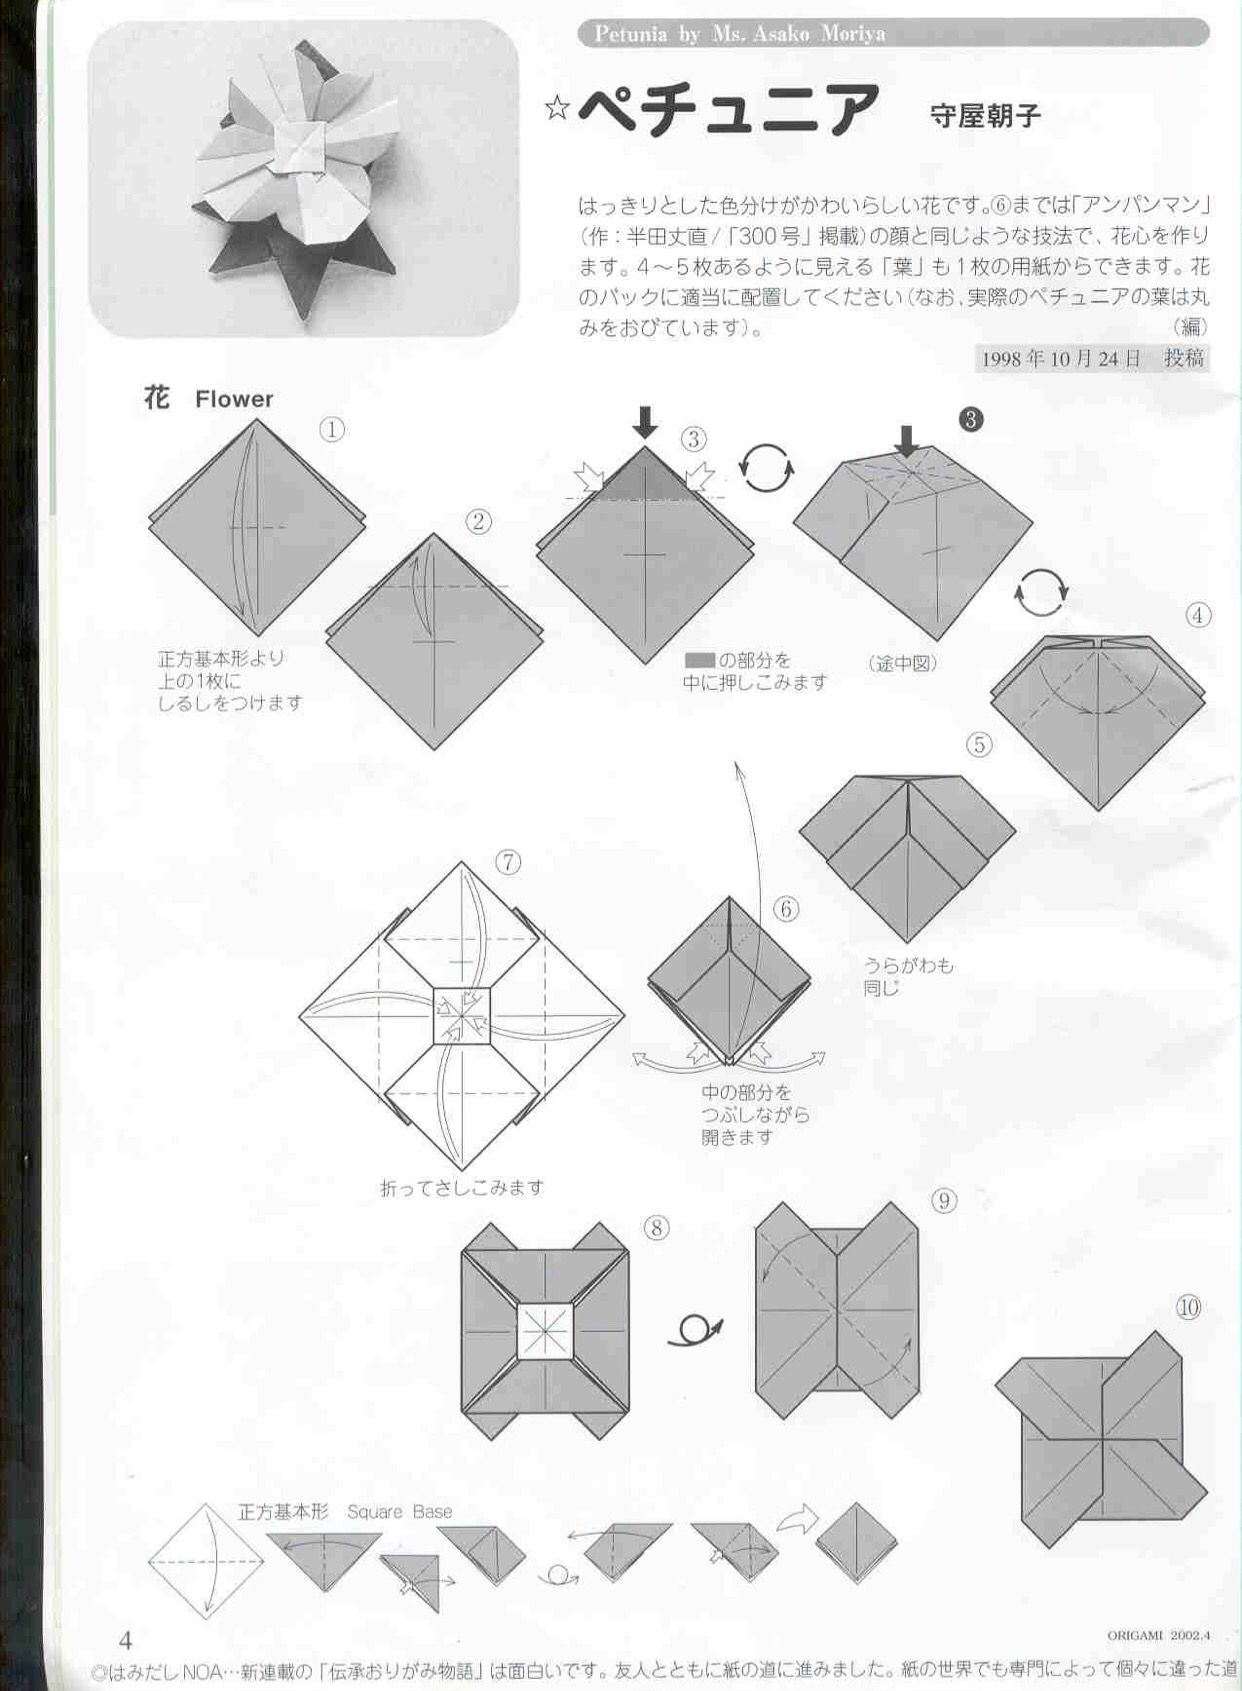 star flower origami diagram toyota celica speaker wiring https s media cache ak0 pinimg